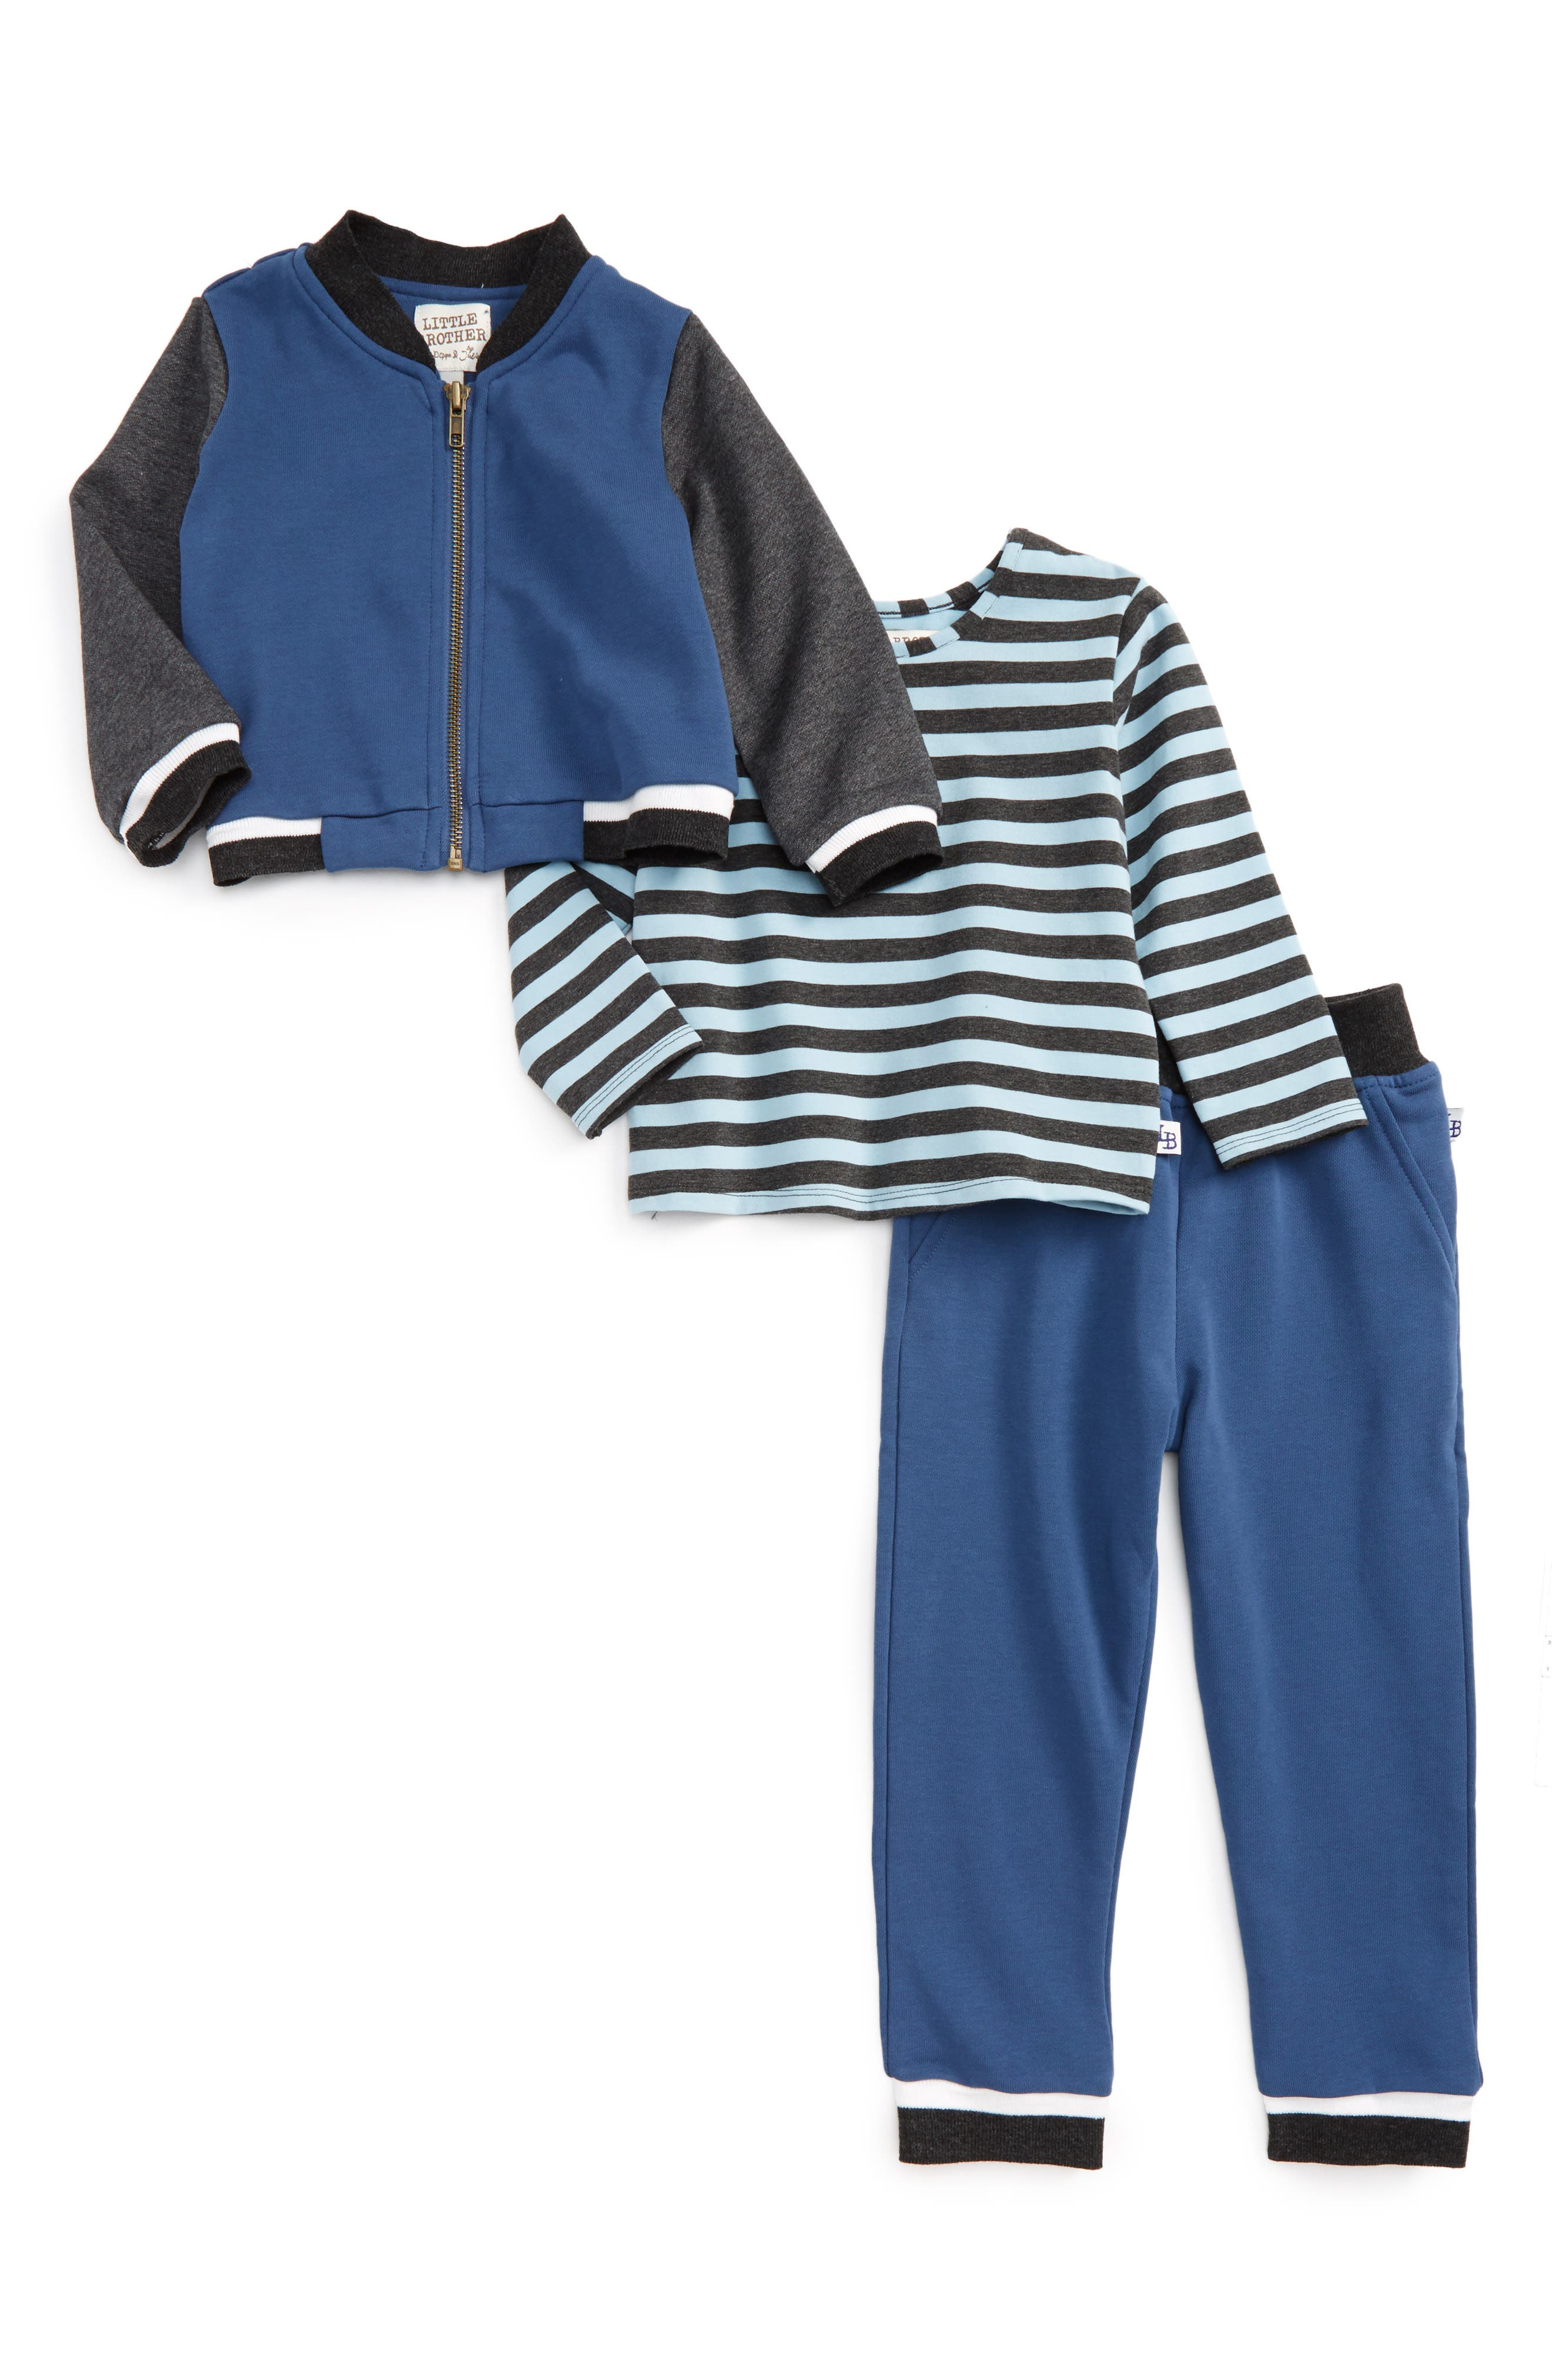 Little Brother by Pippa & Julie Bomber Jacket, Top & Sweatpants Set (Toddler Boys)